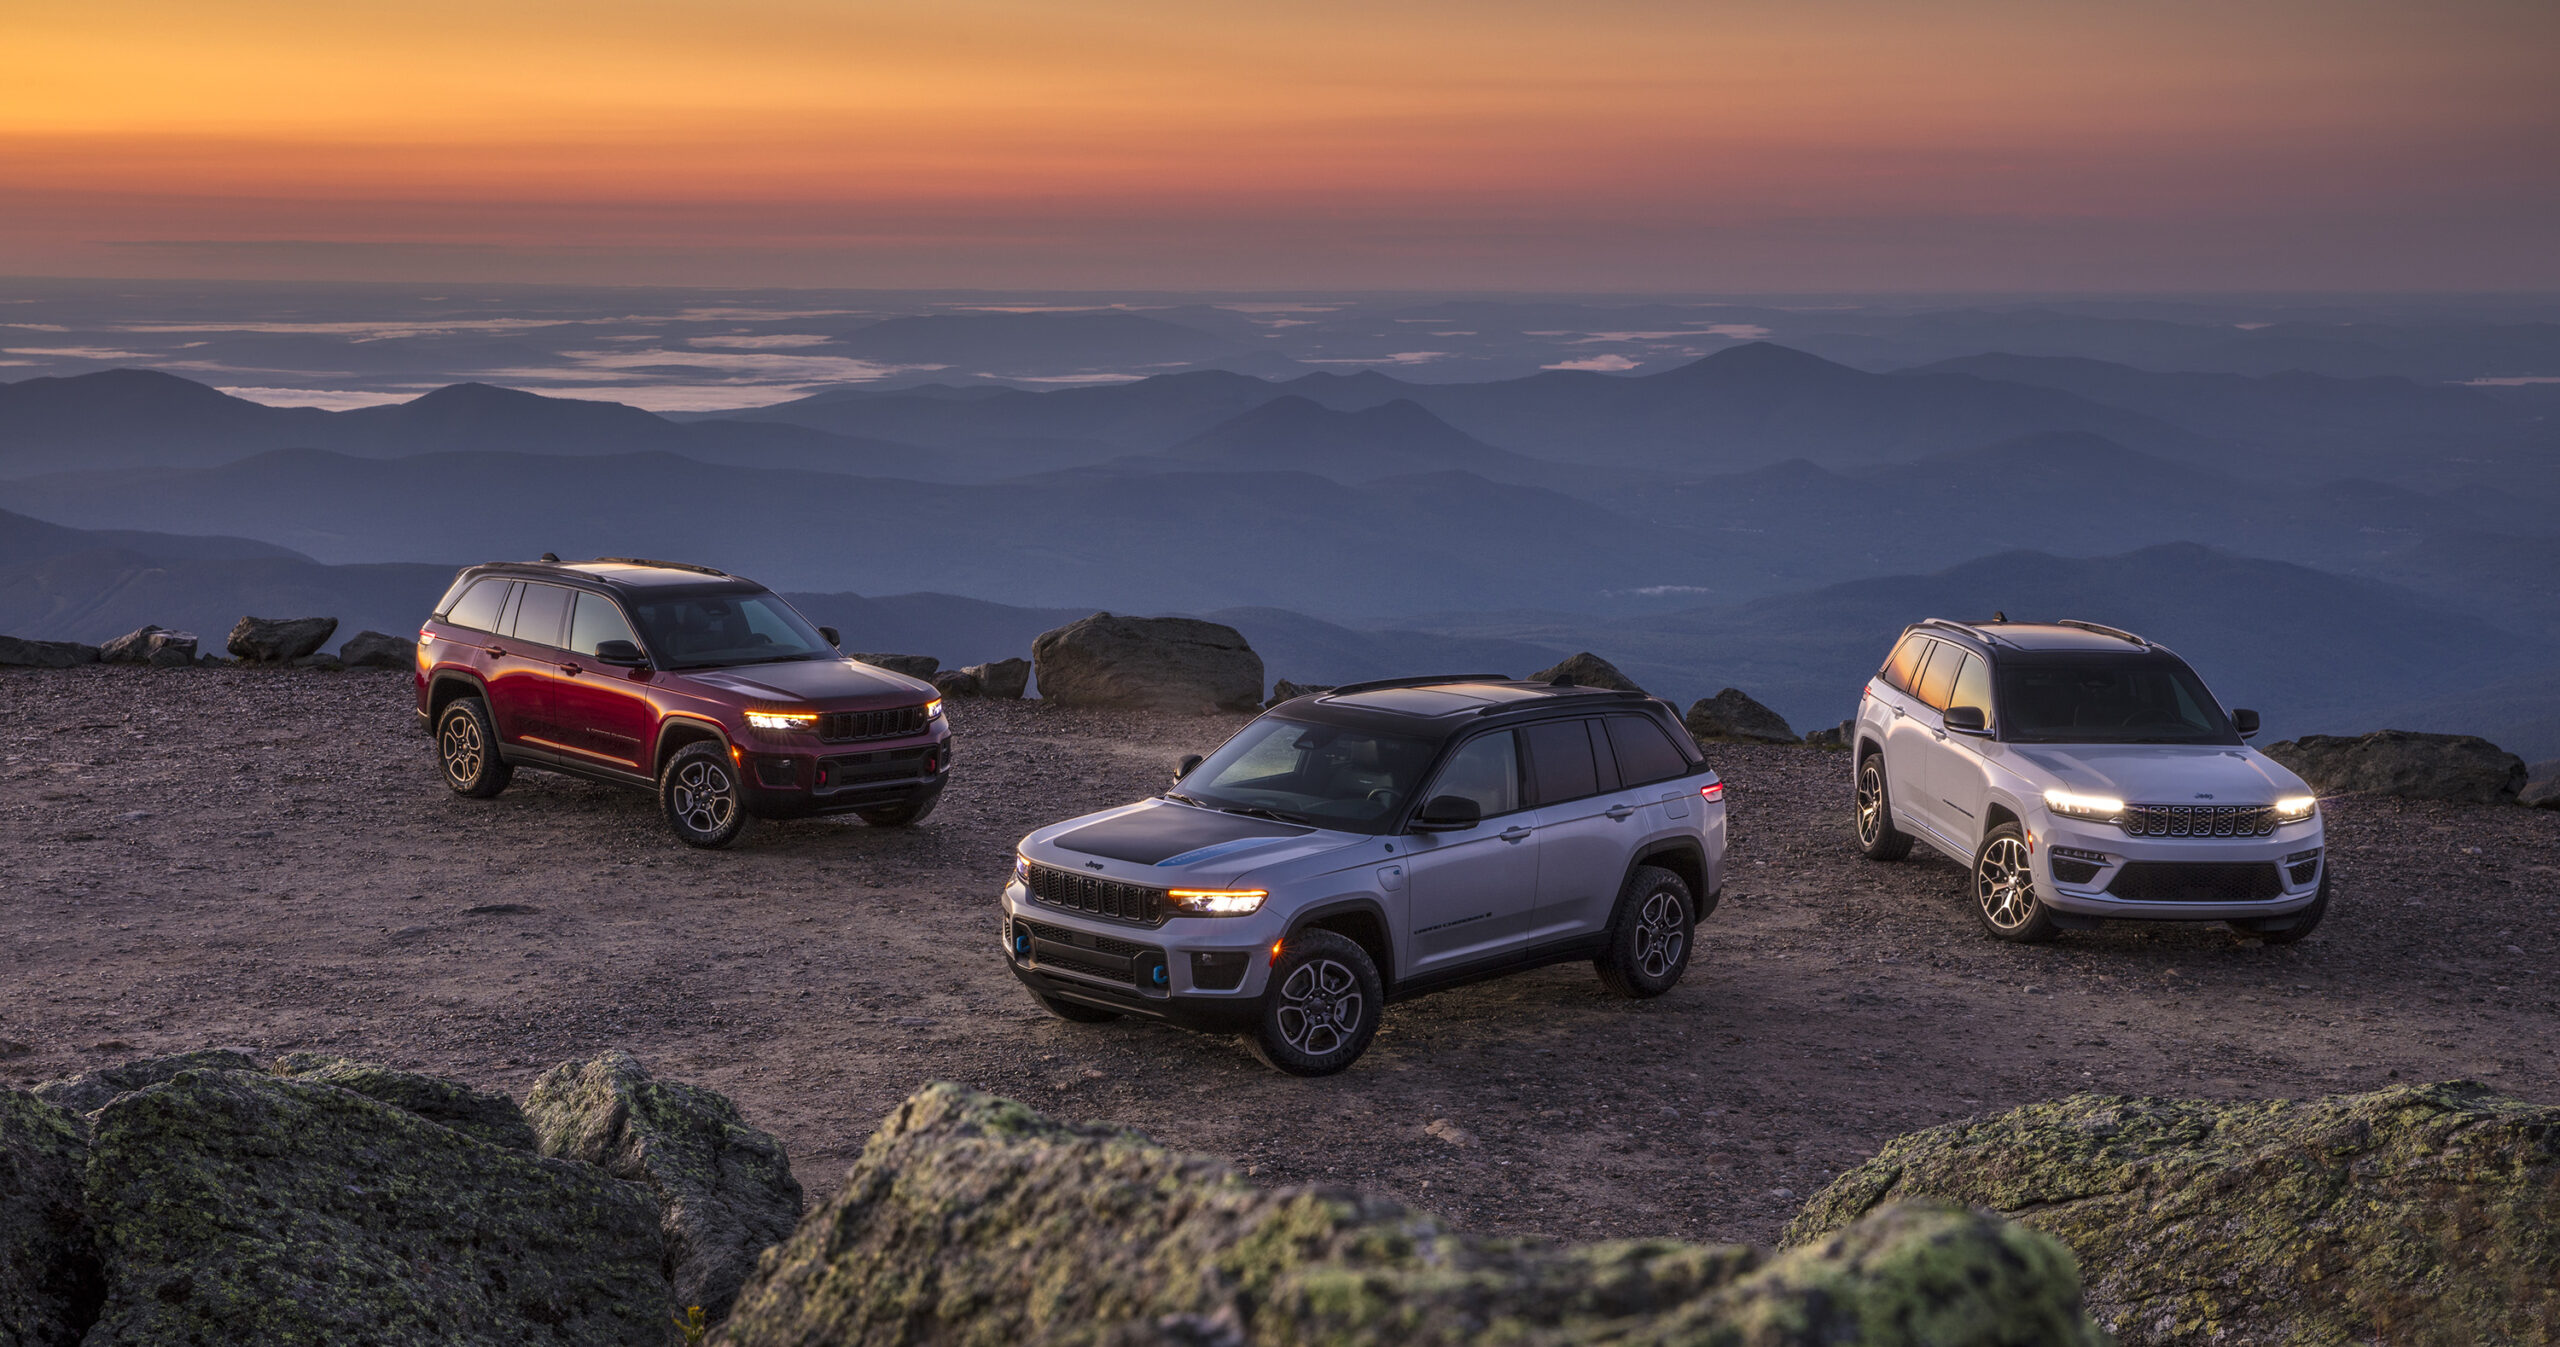 (Left to right) All-new 2022 Jeep® Grand Cherokee Trailhawk, 2022 Jeep® Grand Cherokee Trailhawk 4xe and Jeep Grand Cherokee Summit Reserve 4xe